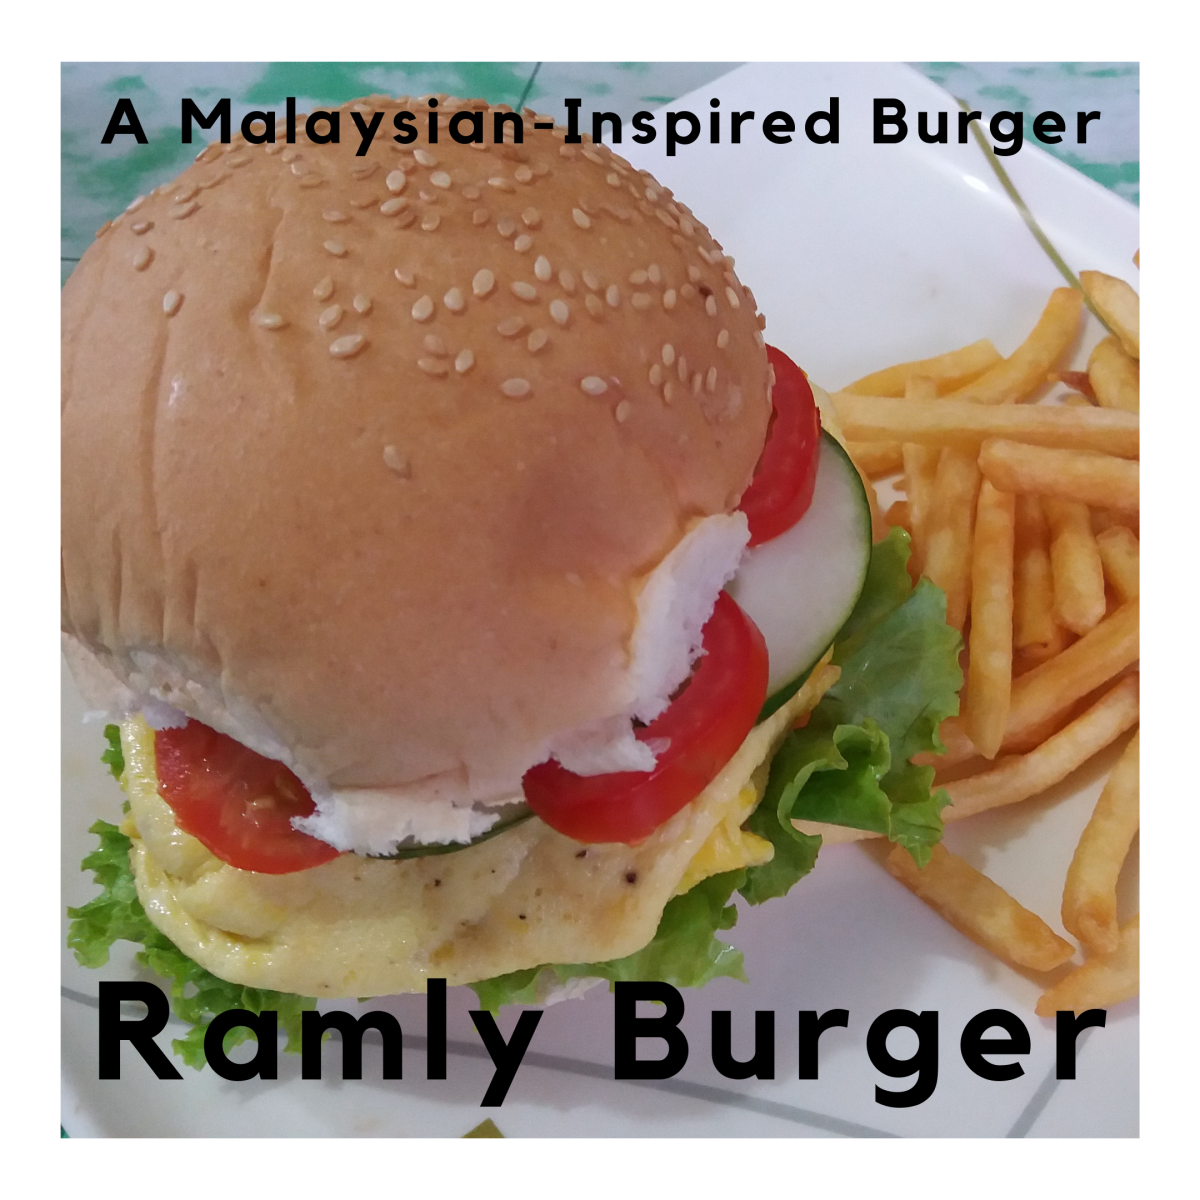 Learn how to make a Ramly burger